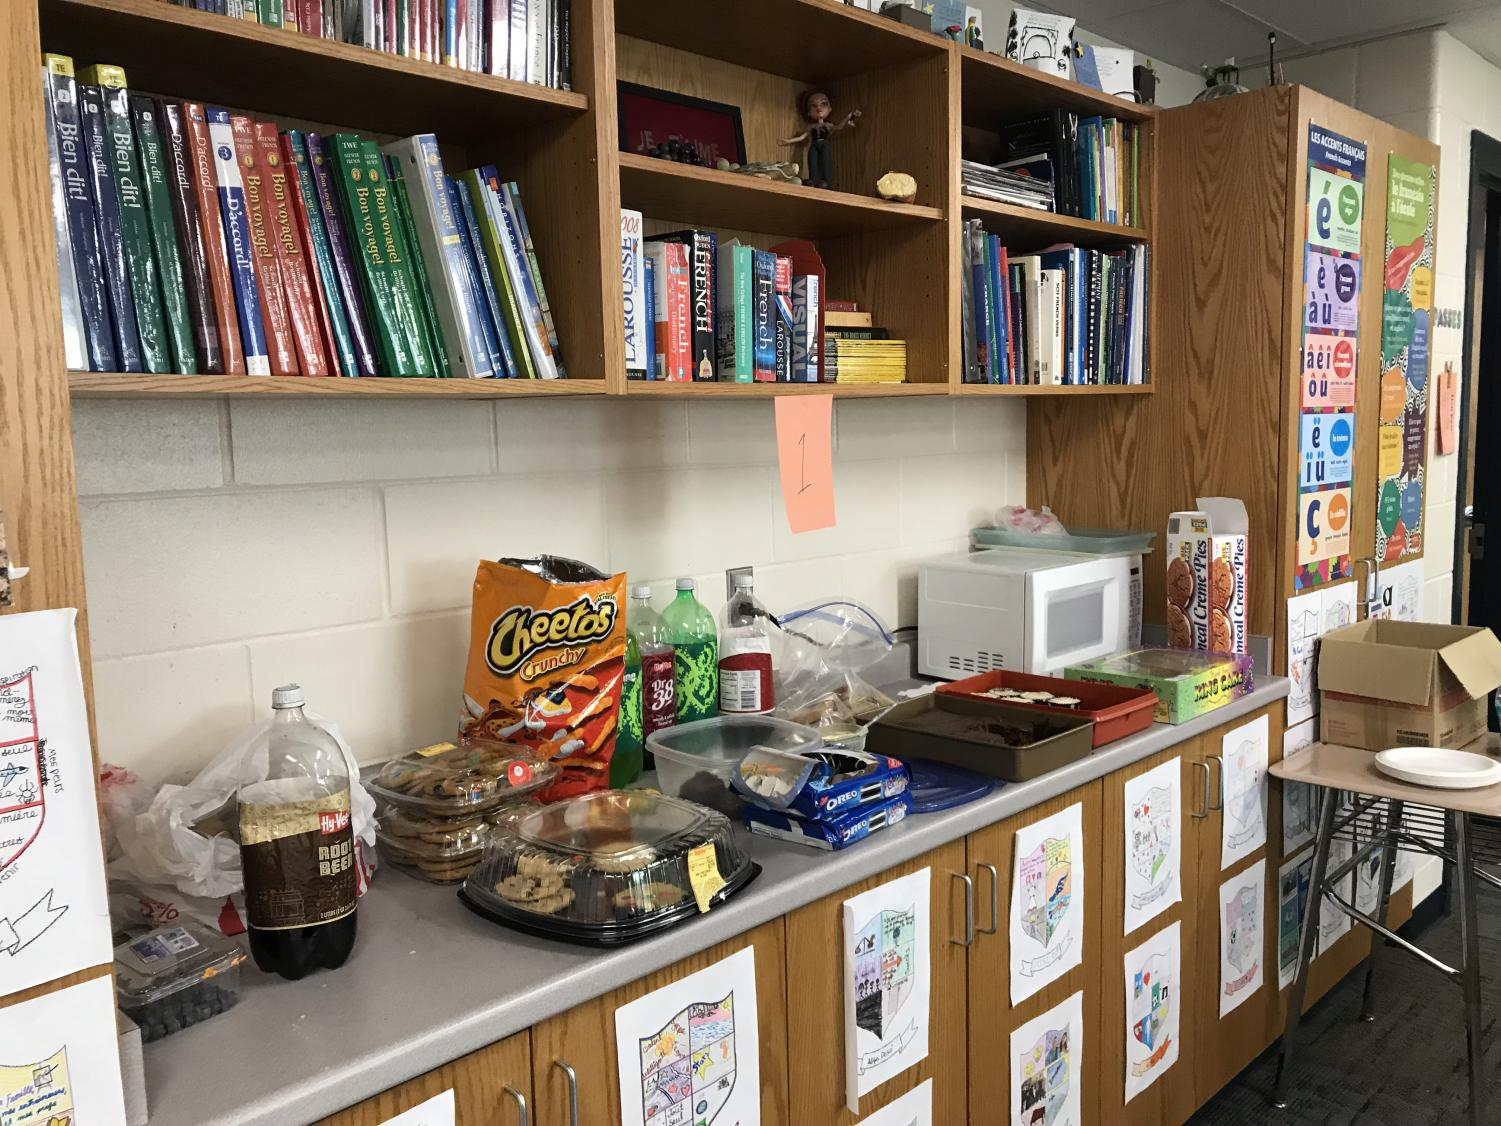 Melissa Lechtenberg's classroom is full of decorations and delicious treats for the celebration of Mardi Gras, on March 5.